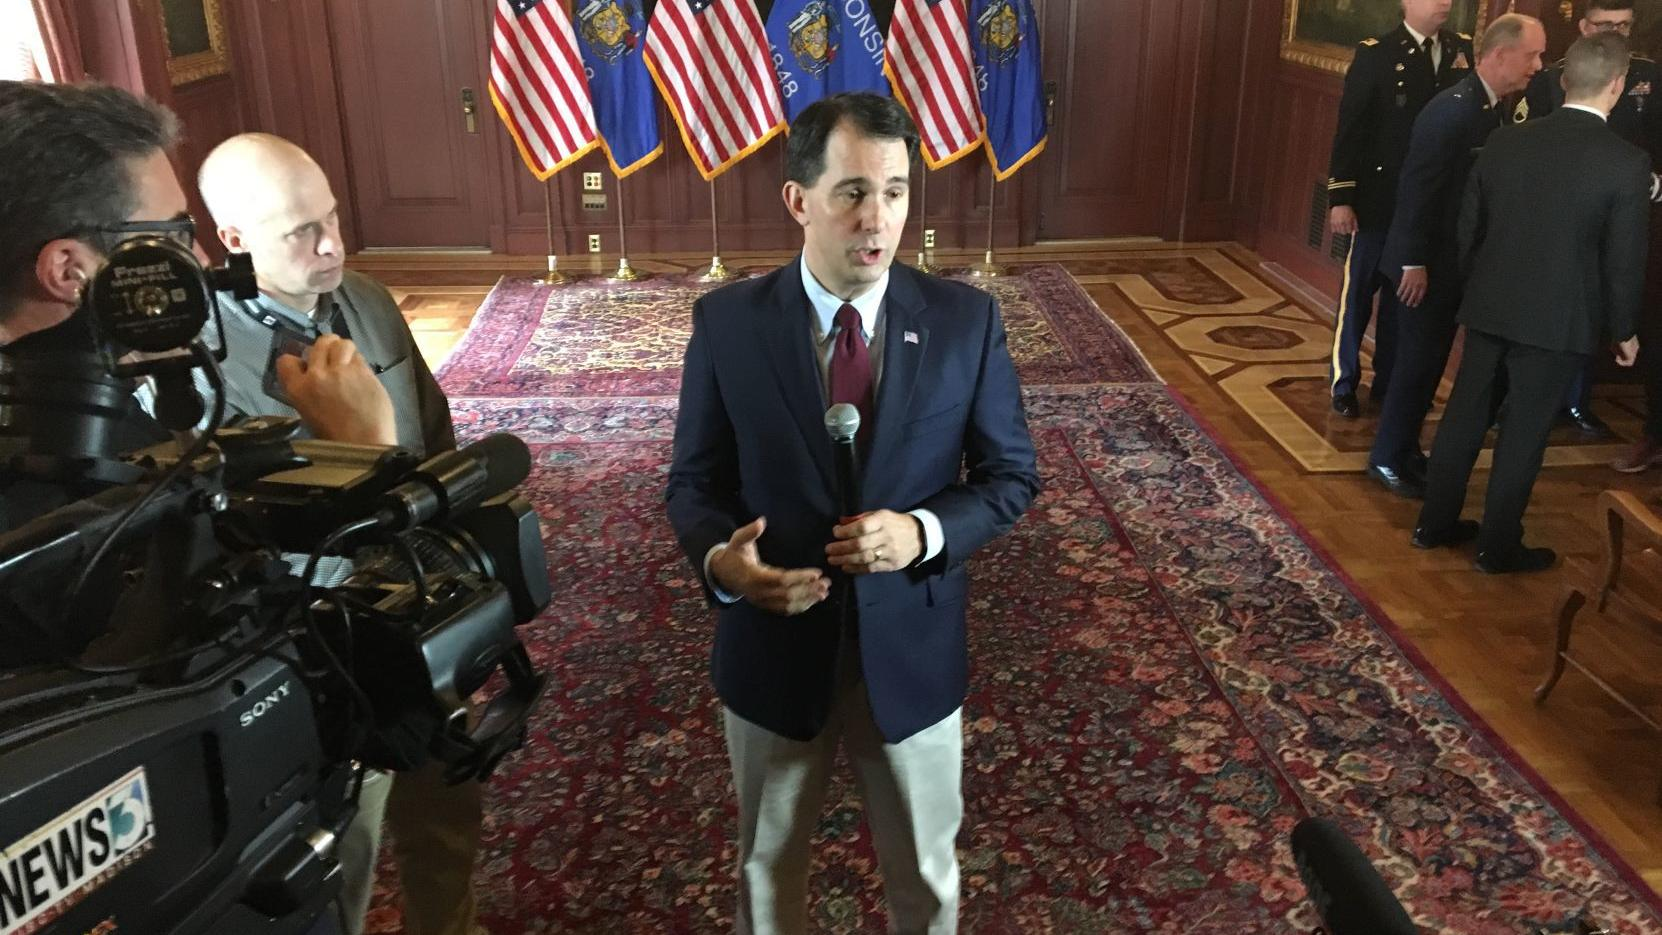 Scott Walker's campaign stump speech challenged in interview